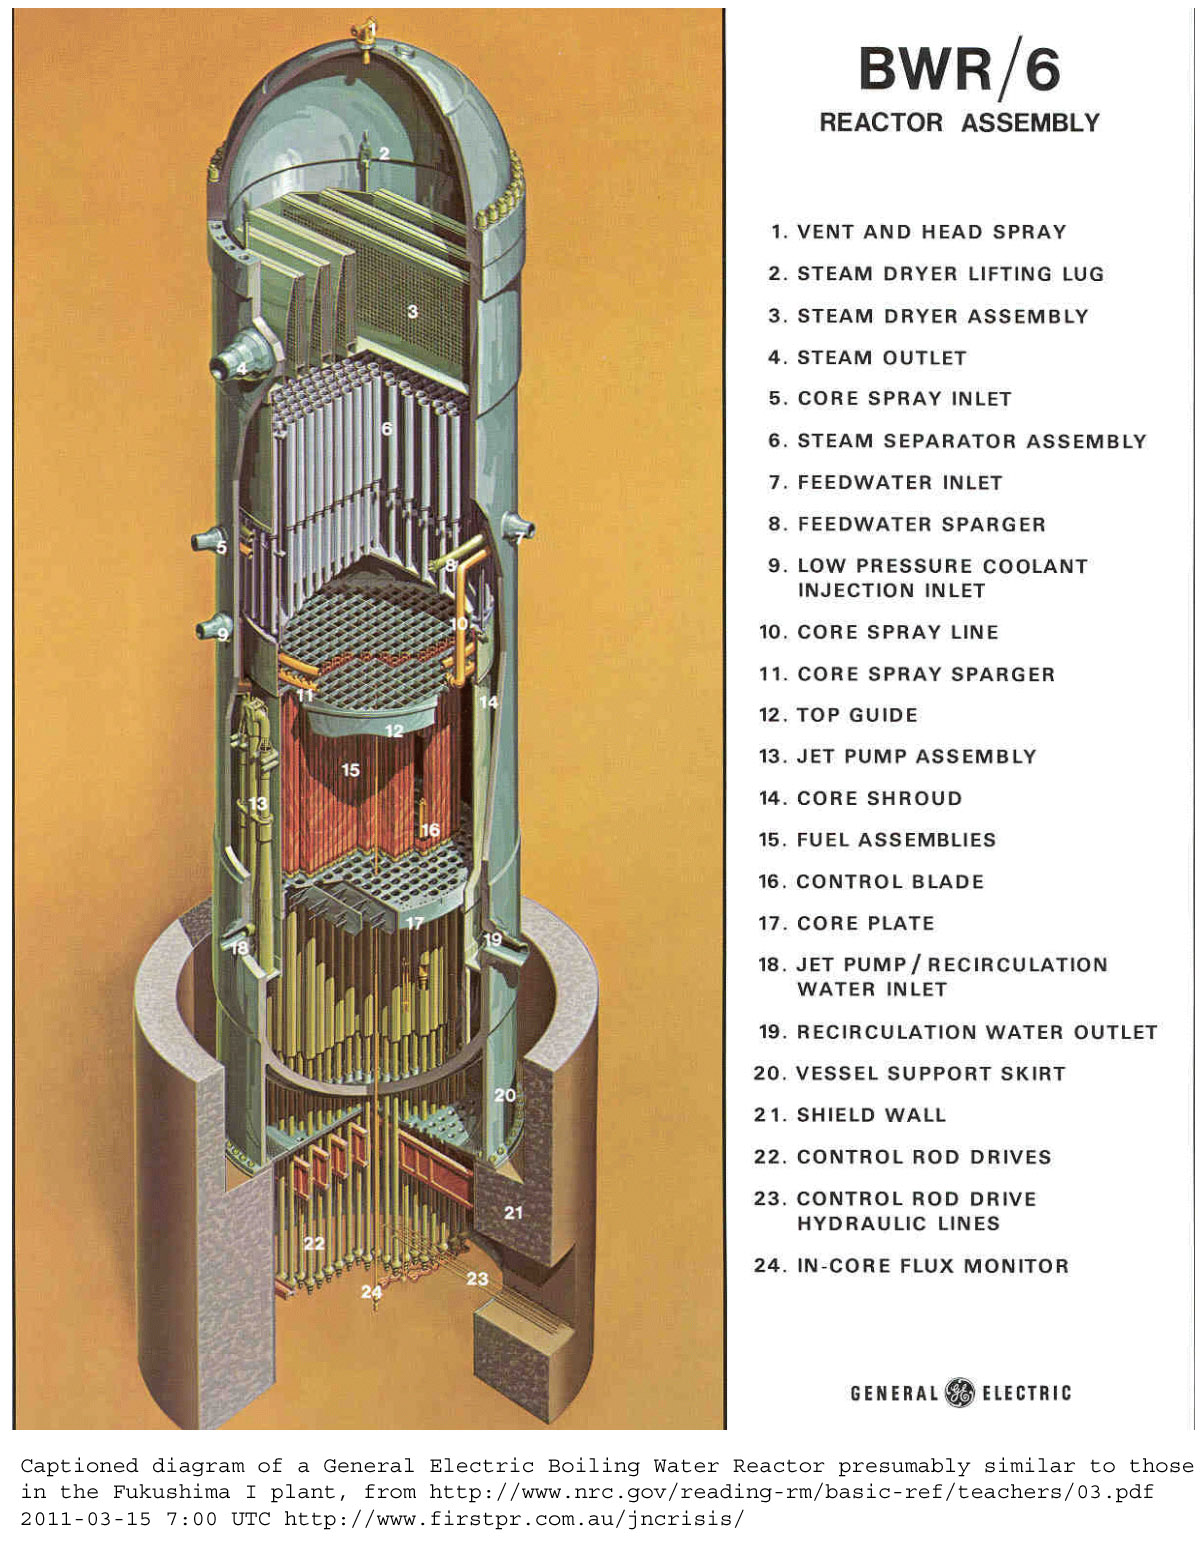 2011 Japanese Nuclear Crisis Links And Images Power Plant Diagram Boiling Water Reactor Larger Version From Nrcgov 1204x1550